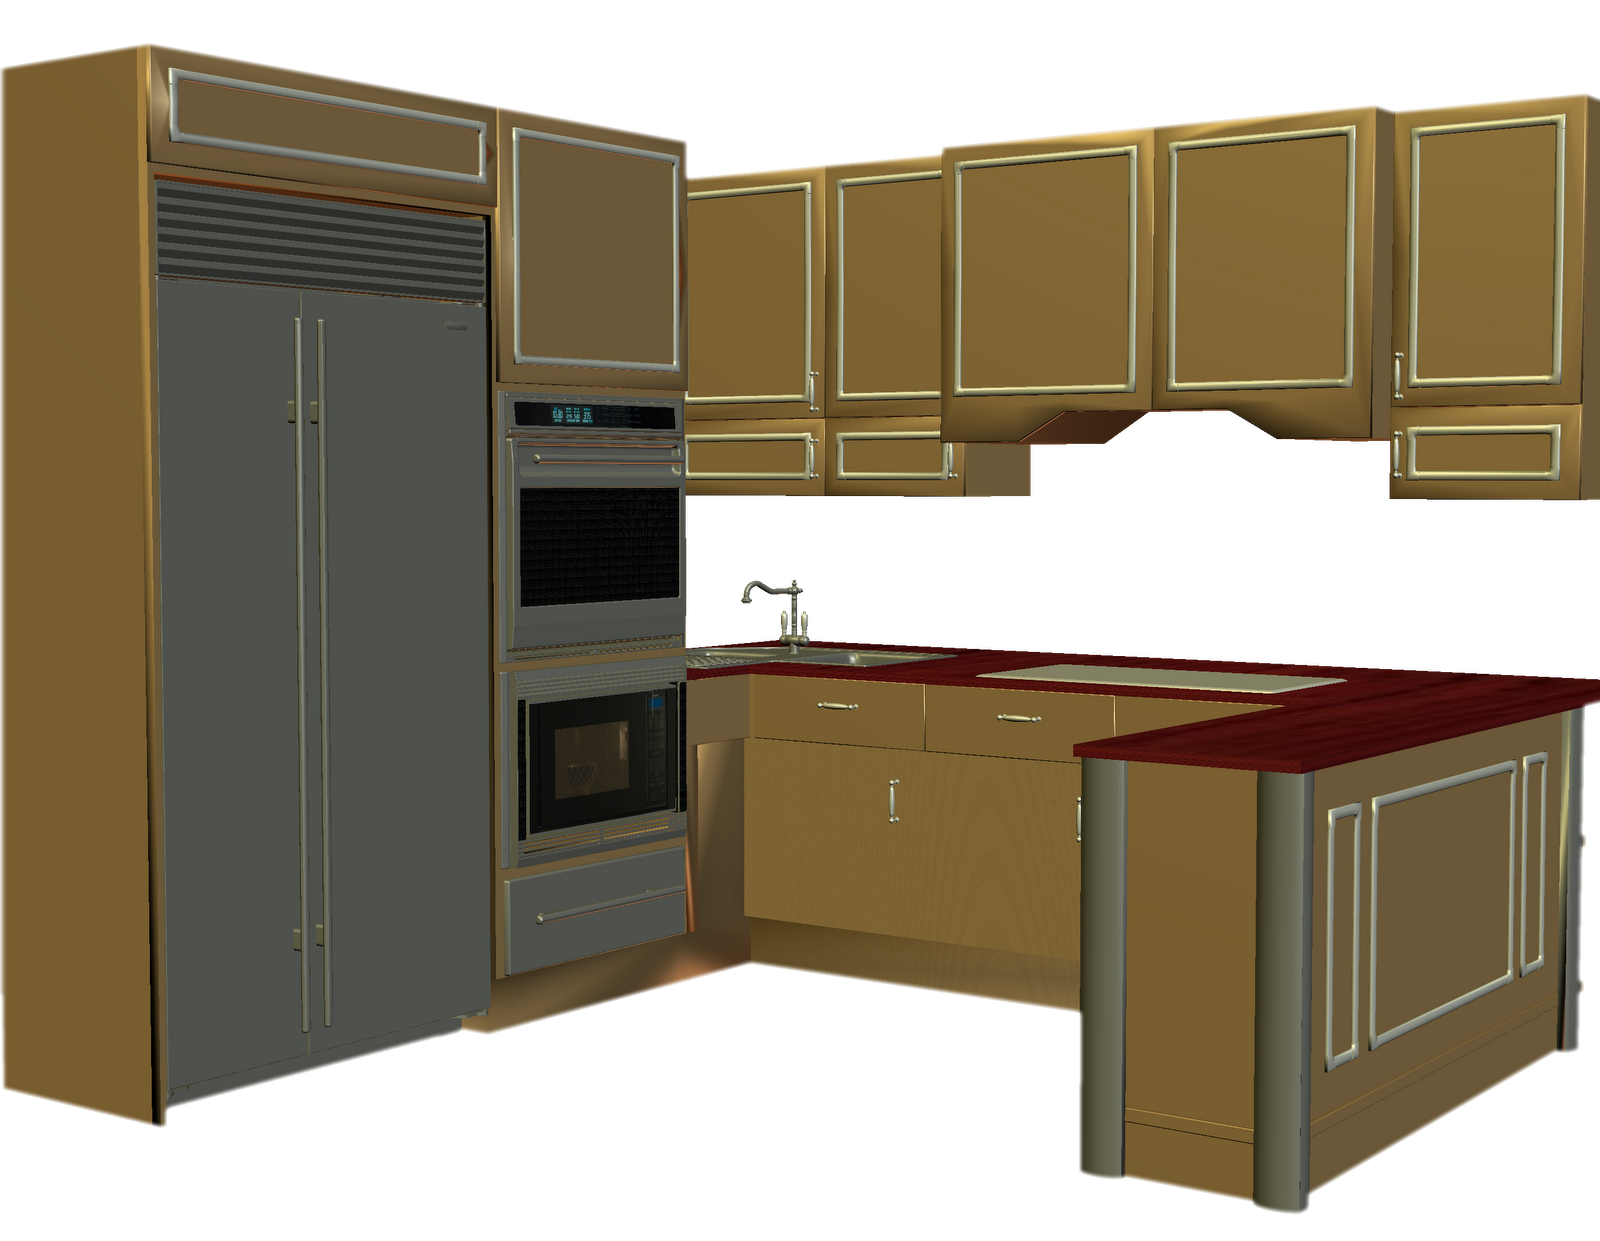 Here Some Pretty Cool Kitchen Object Clipart Enjoy